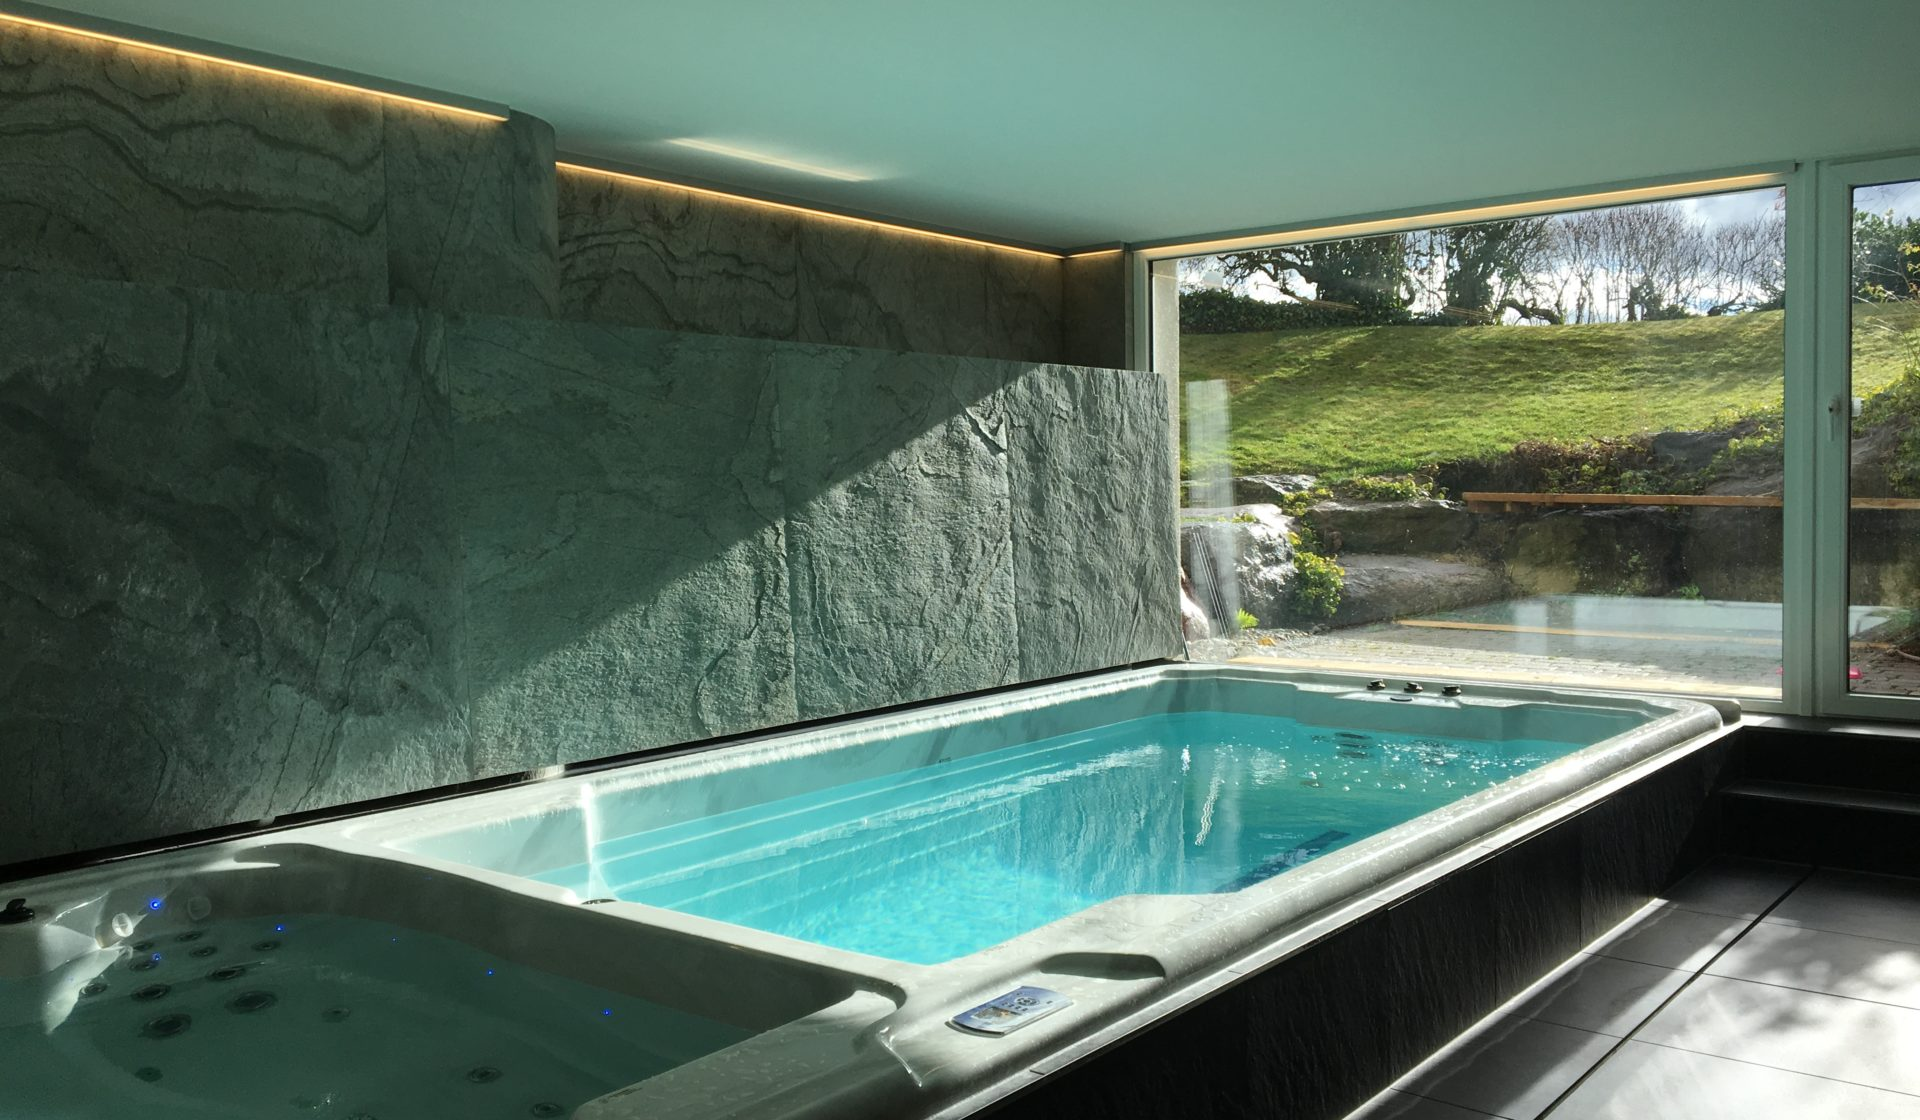 Jacuzzi Pool Abdeckung Swim Spa Pool Rr Variationen Gmbh